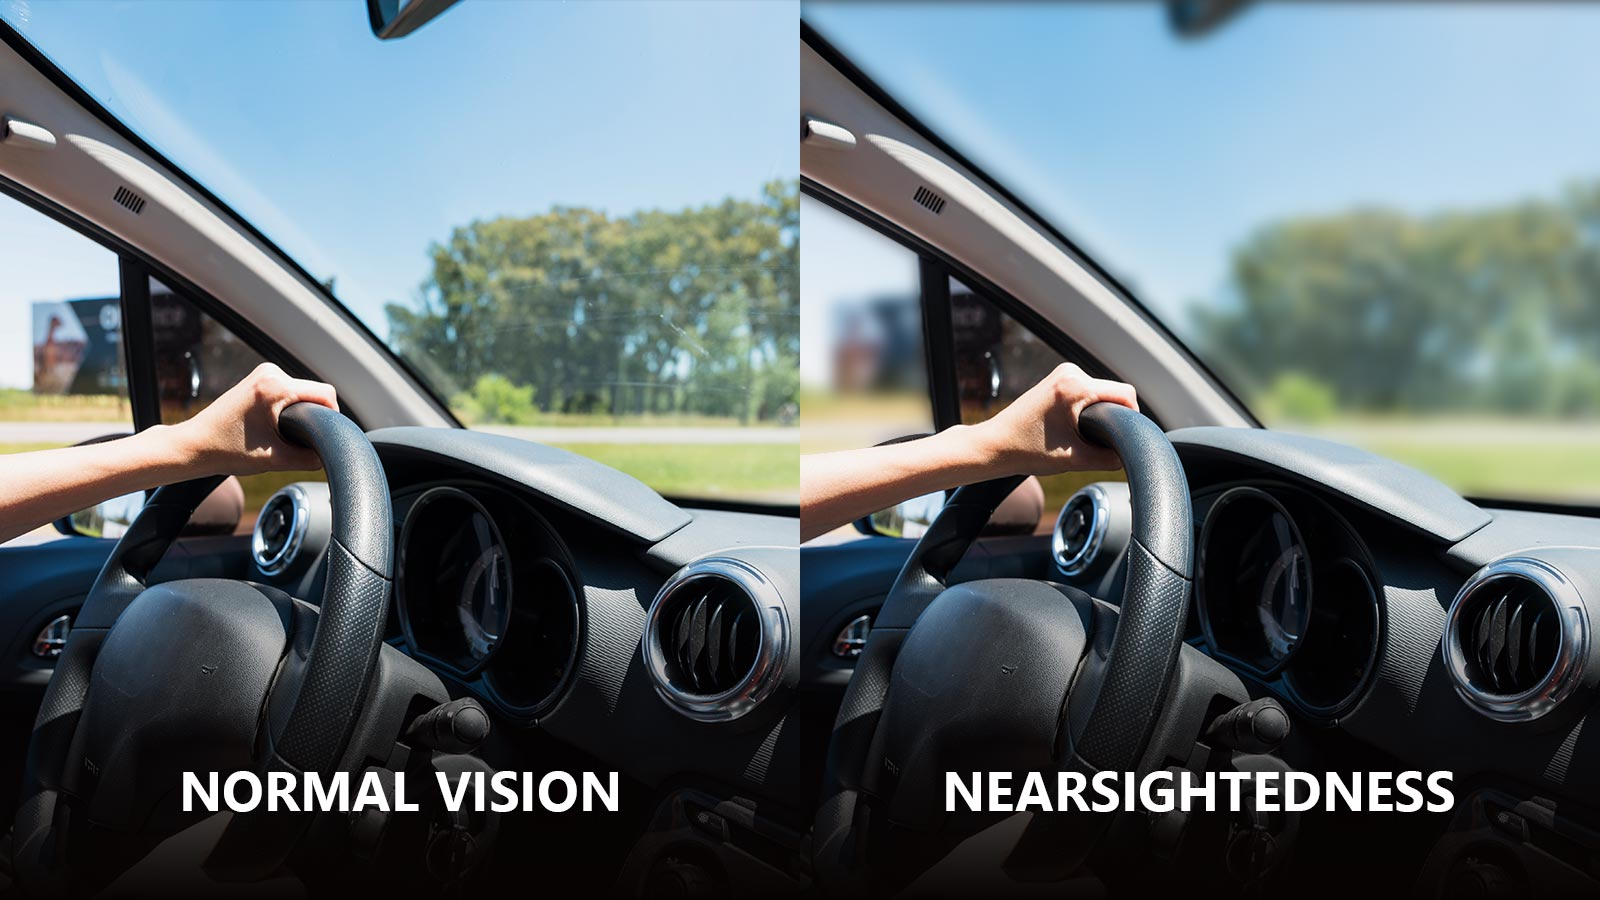 A guide to Nearsightedness: Understand the condition, symptoms and treatment.